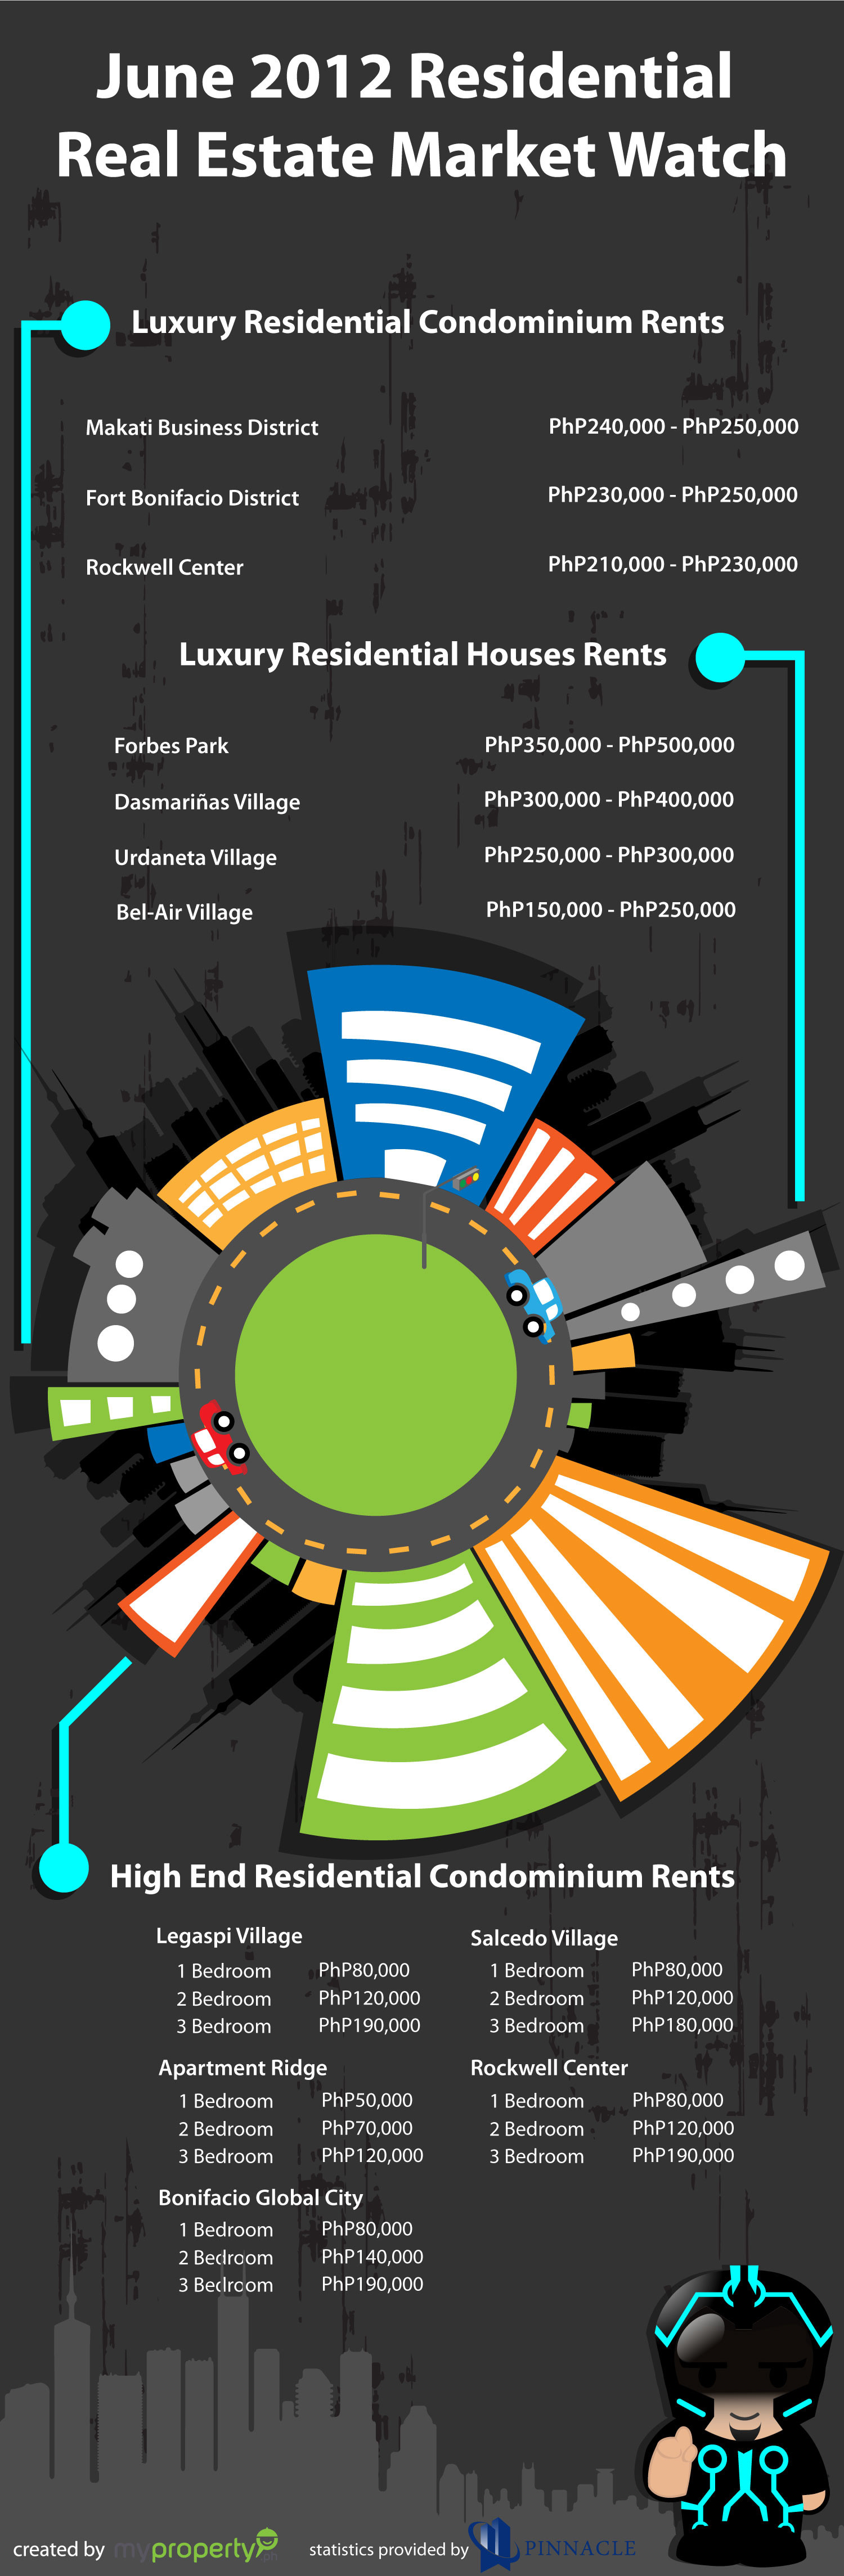 June 2012 Philippine Residential Real Estate Market Watch [INFOGRAPHIC] Infographic